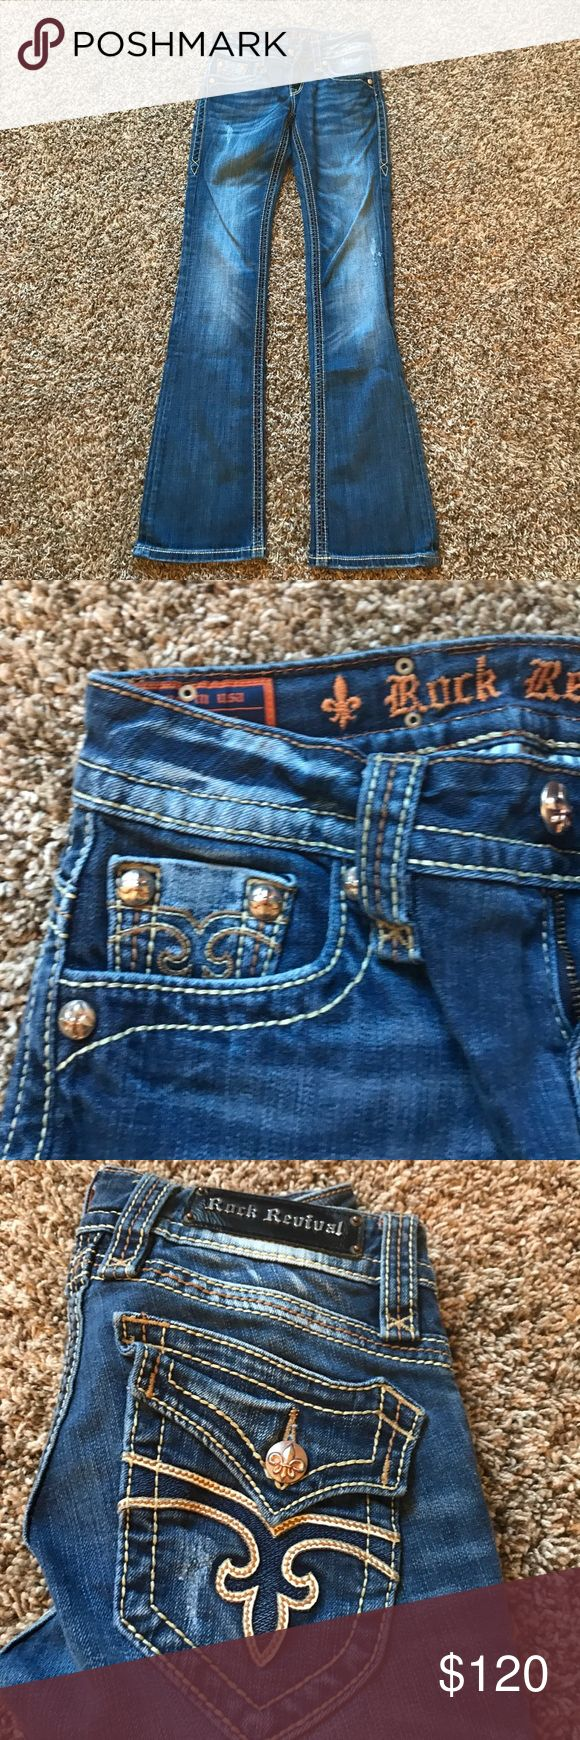 Rock Revival woman's jeans 28L Worn a handful of times and in great condition. Rock Revival Jeans Boot Cut